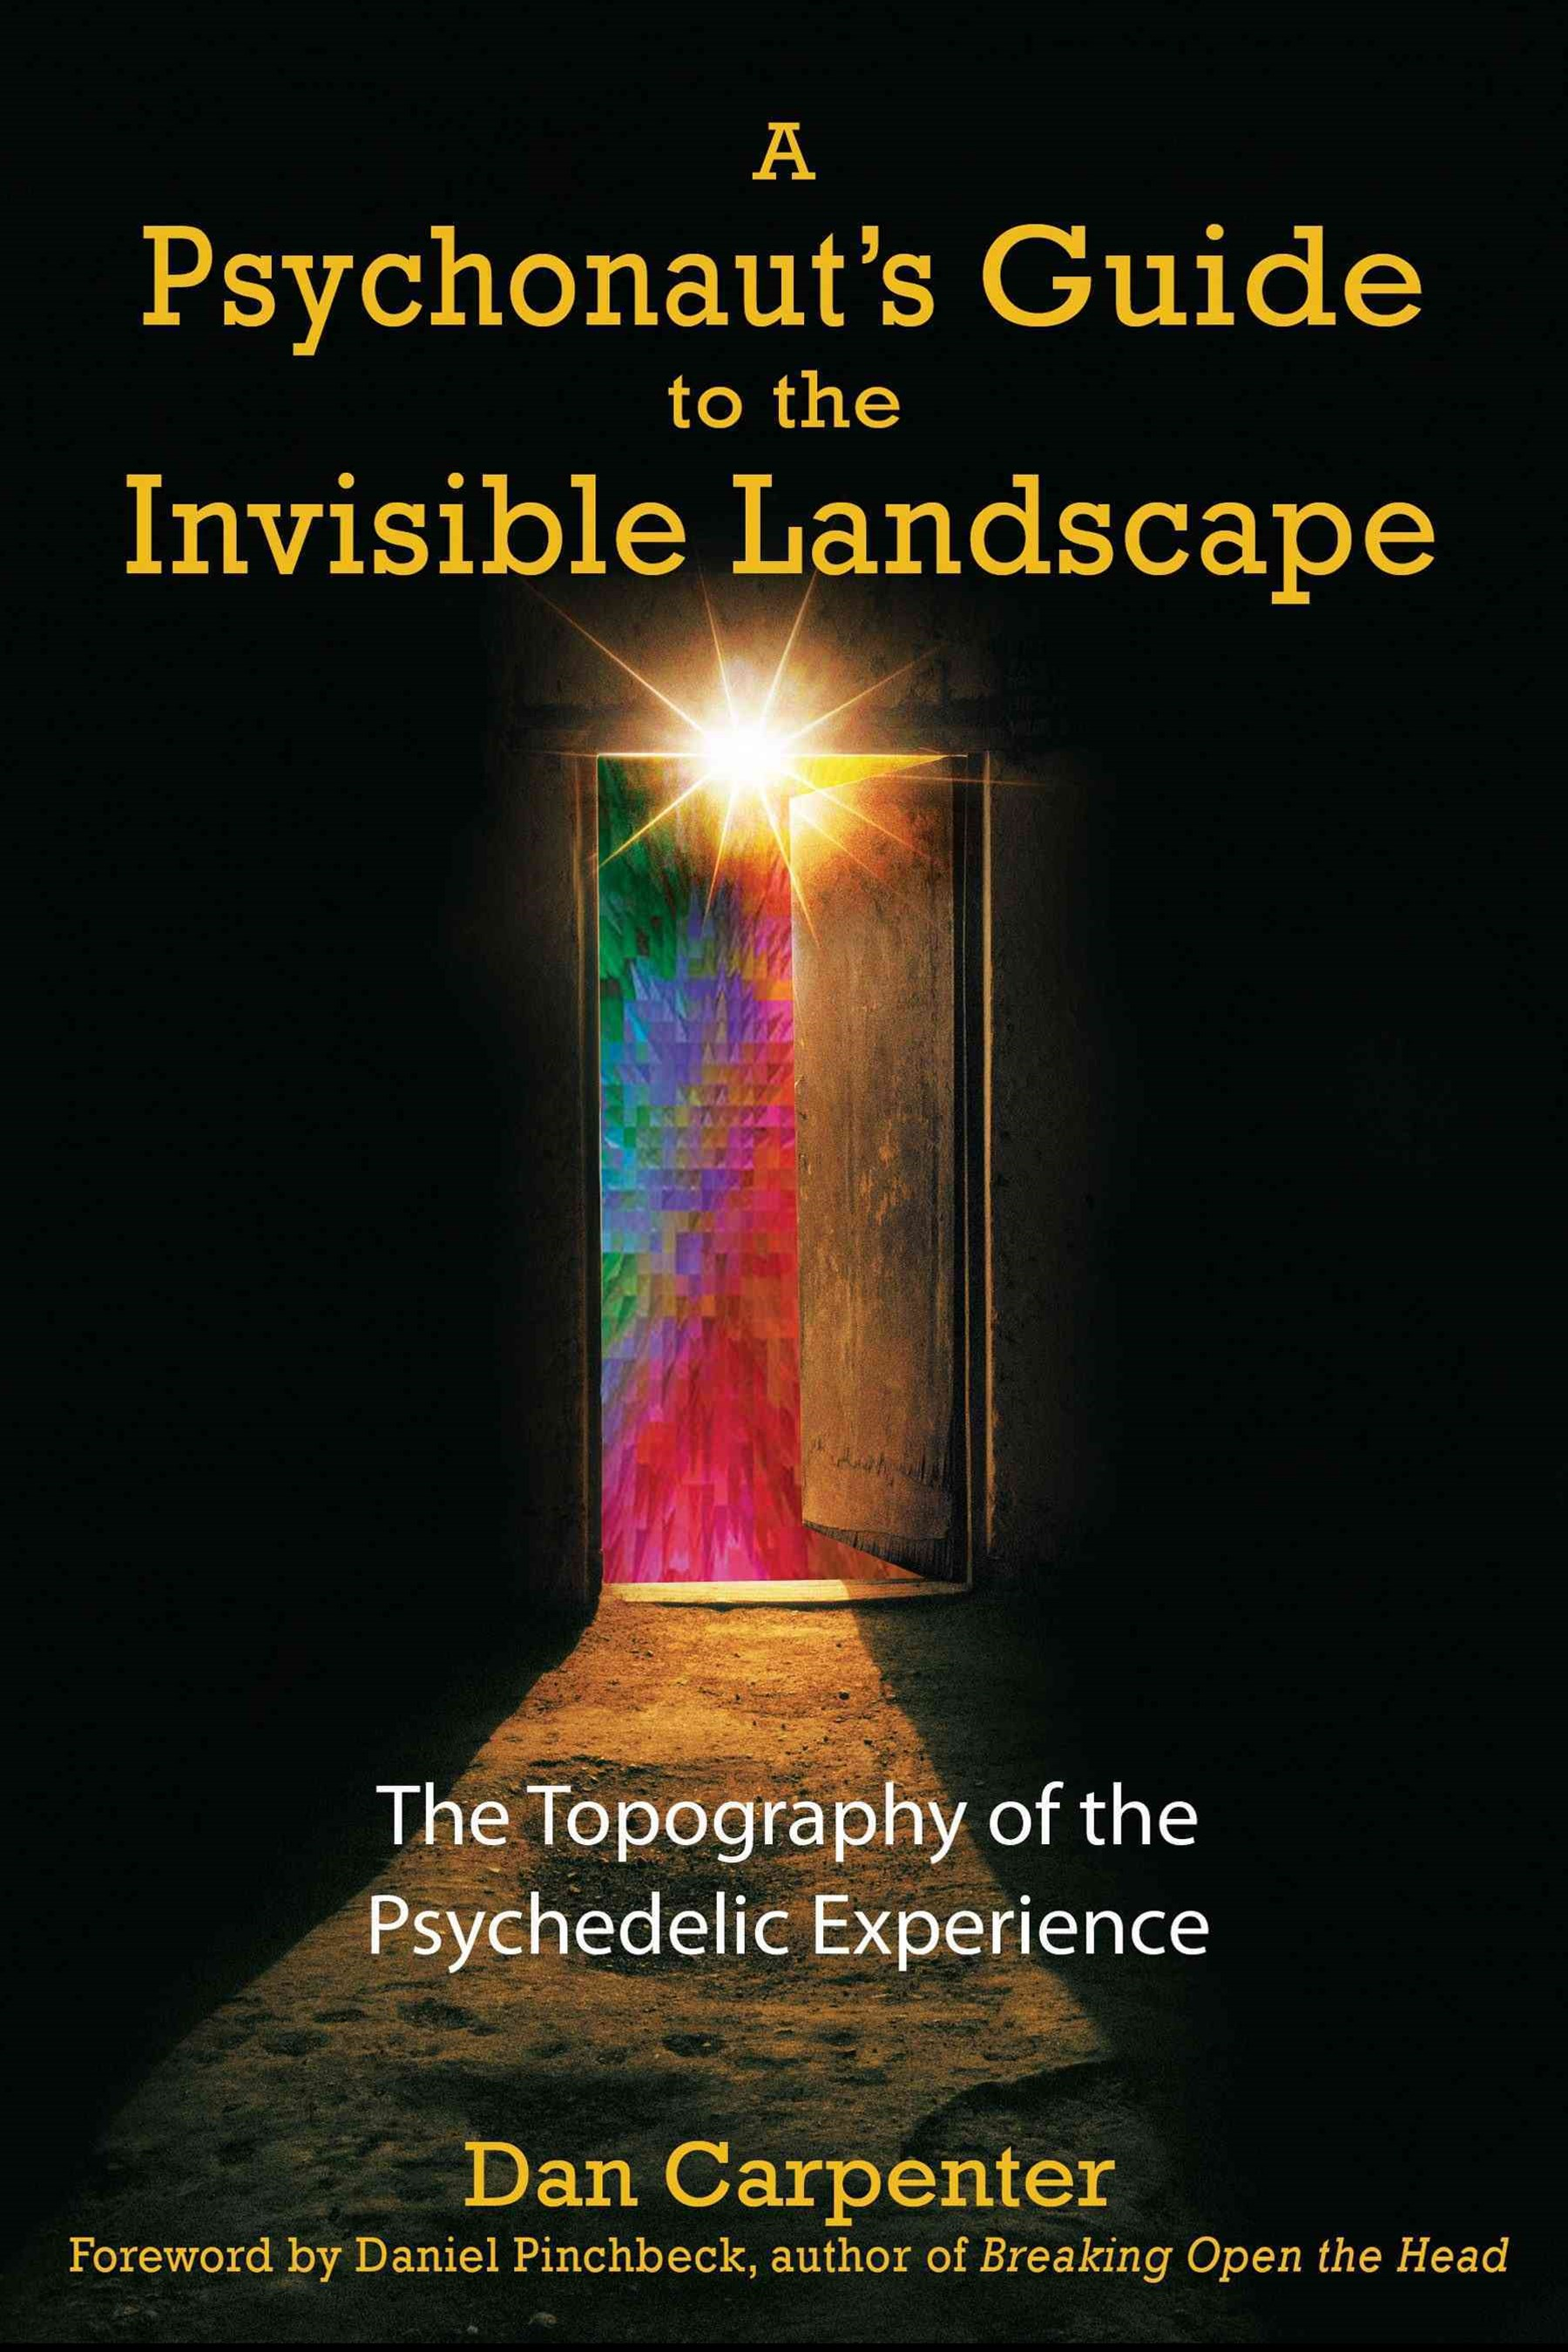 Psychonaut's Guide to the Invisible Landscape